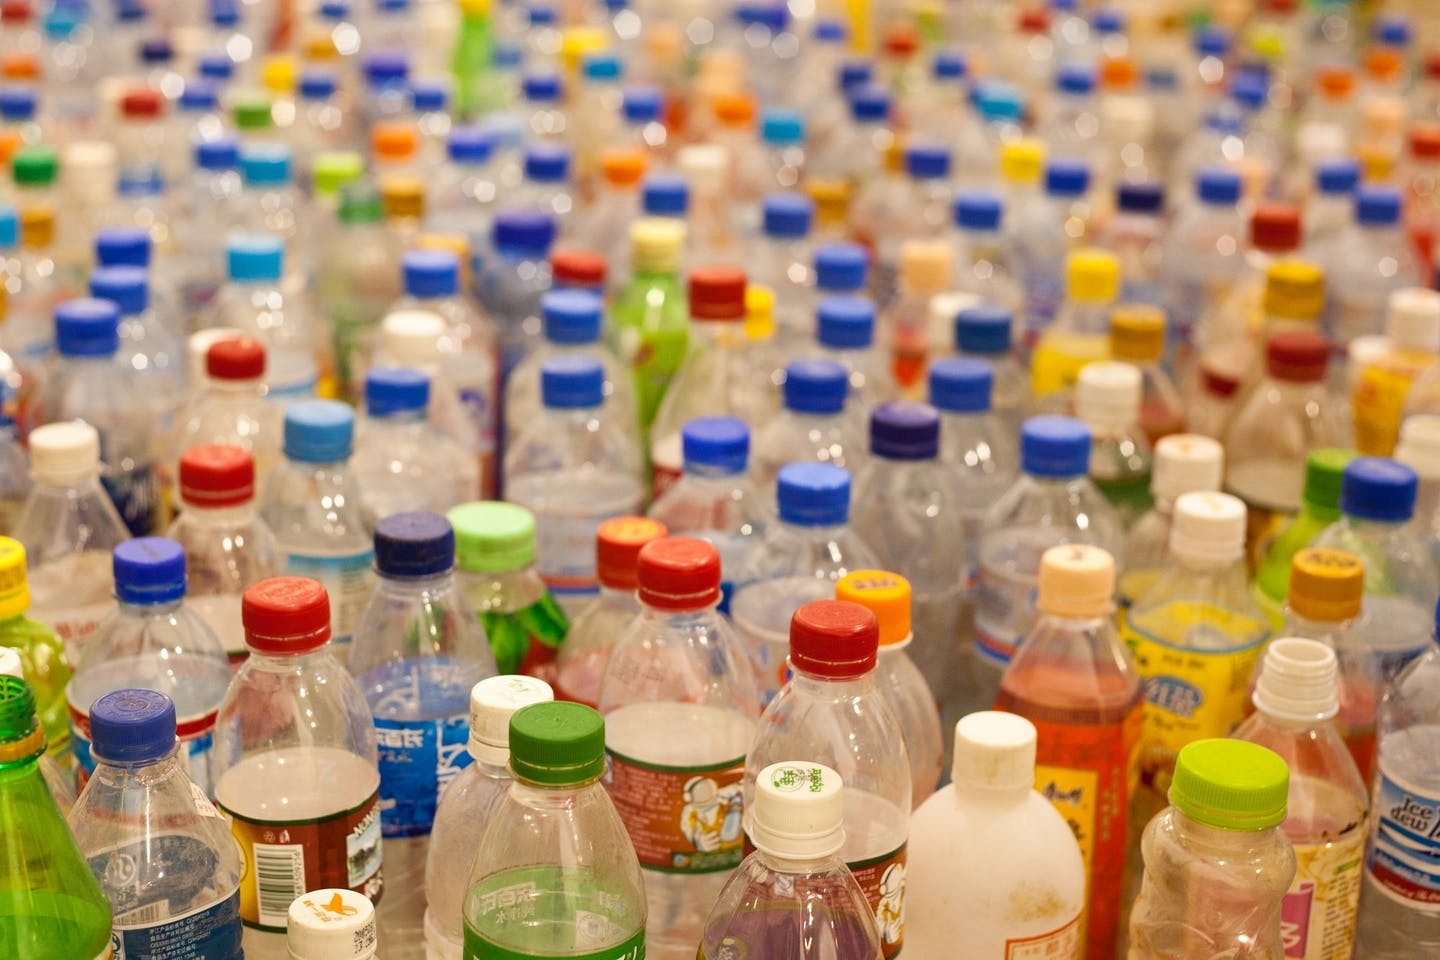 A sea of plastic bottles. Image: Tom Page, CC BY-SA 2.0